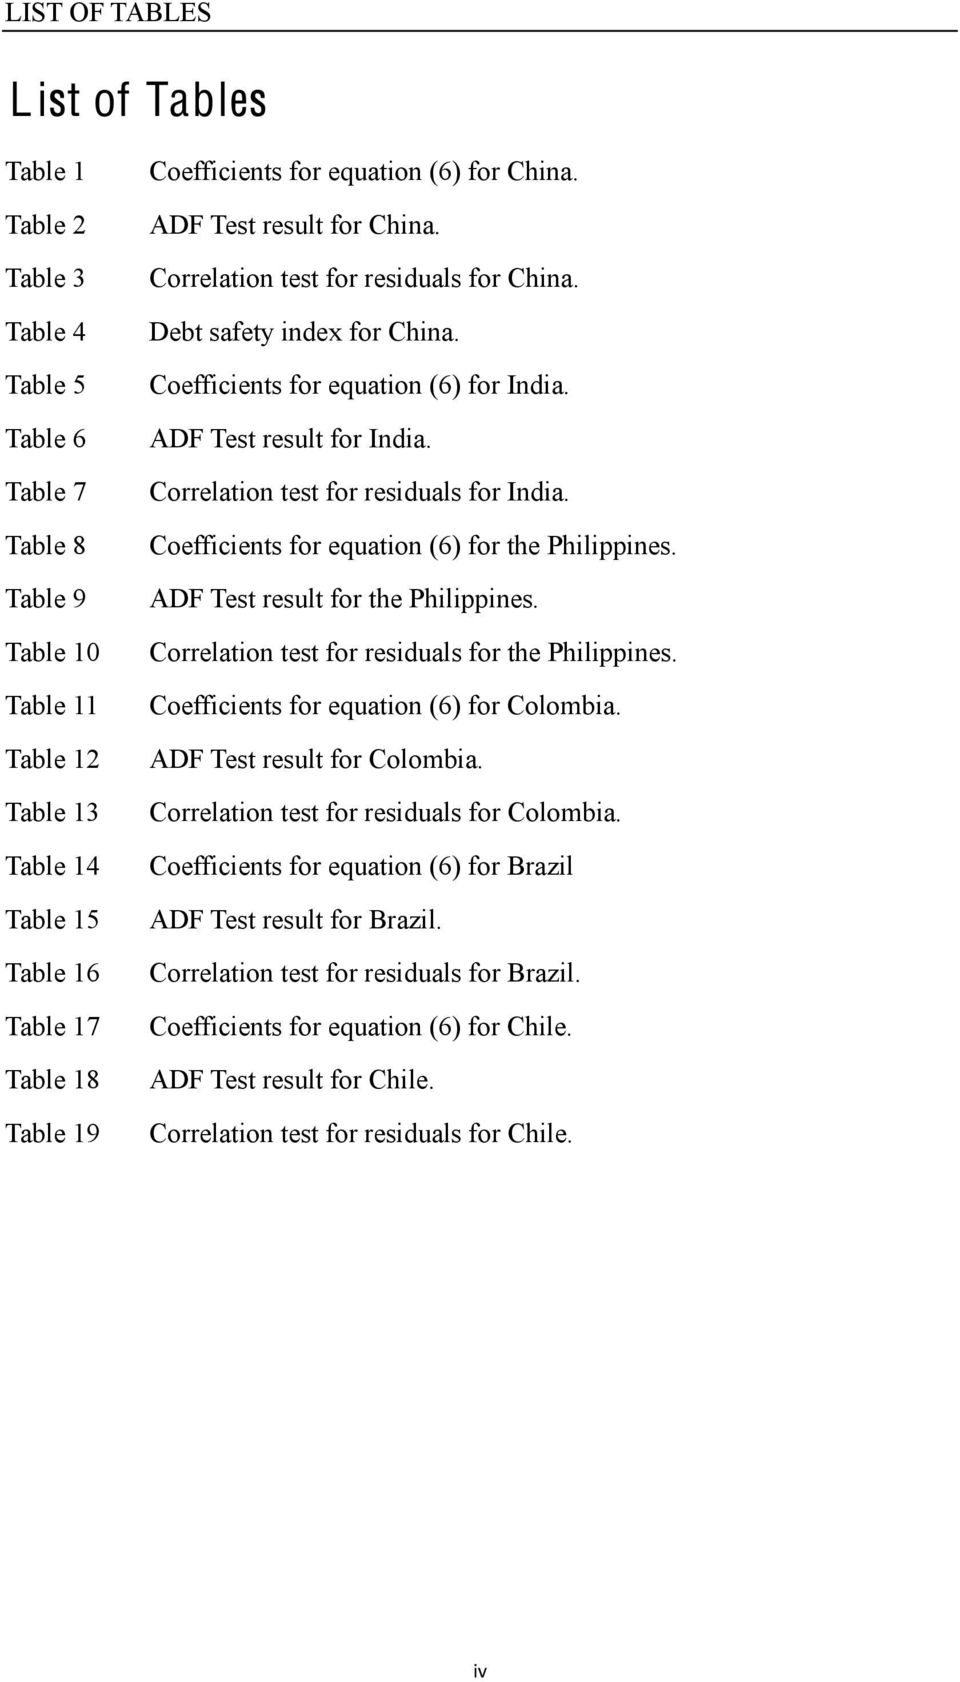 ADF Test result for India. Correlation test for residuals for India. Coefficients for equation (6) for the Philippines. ADF Test result for the Philippines.